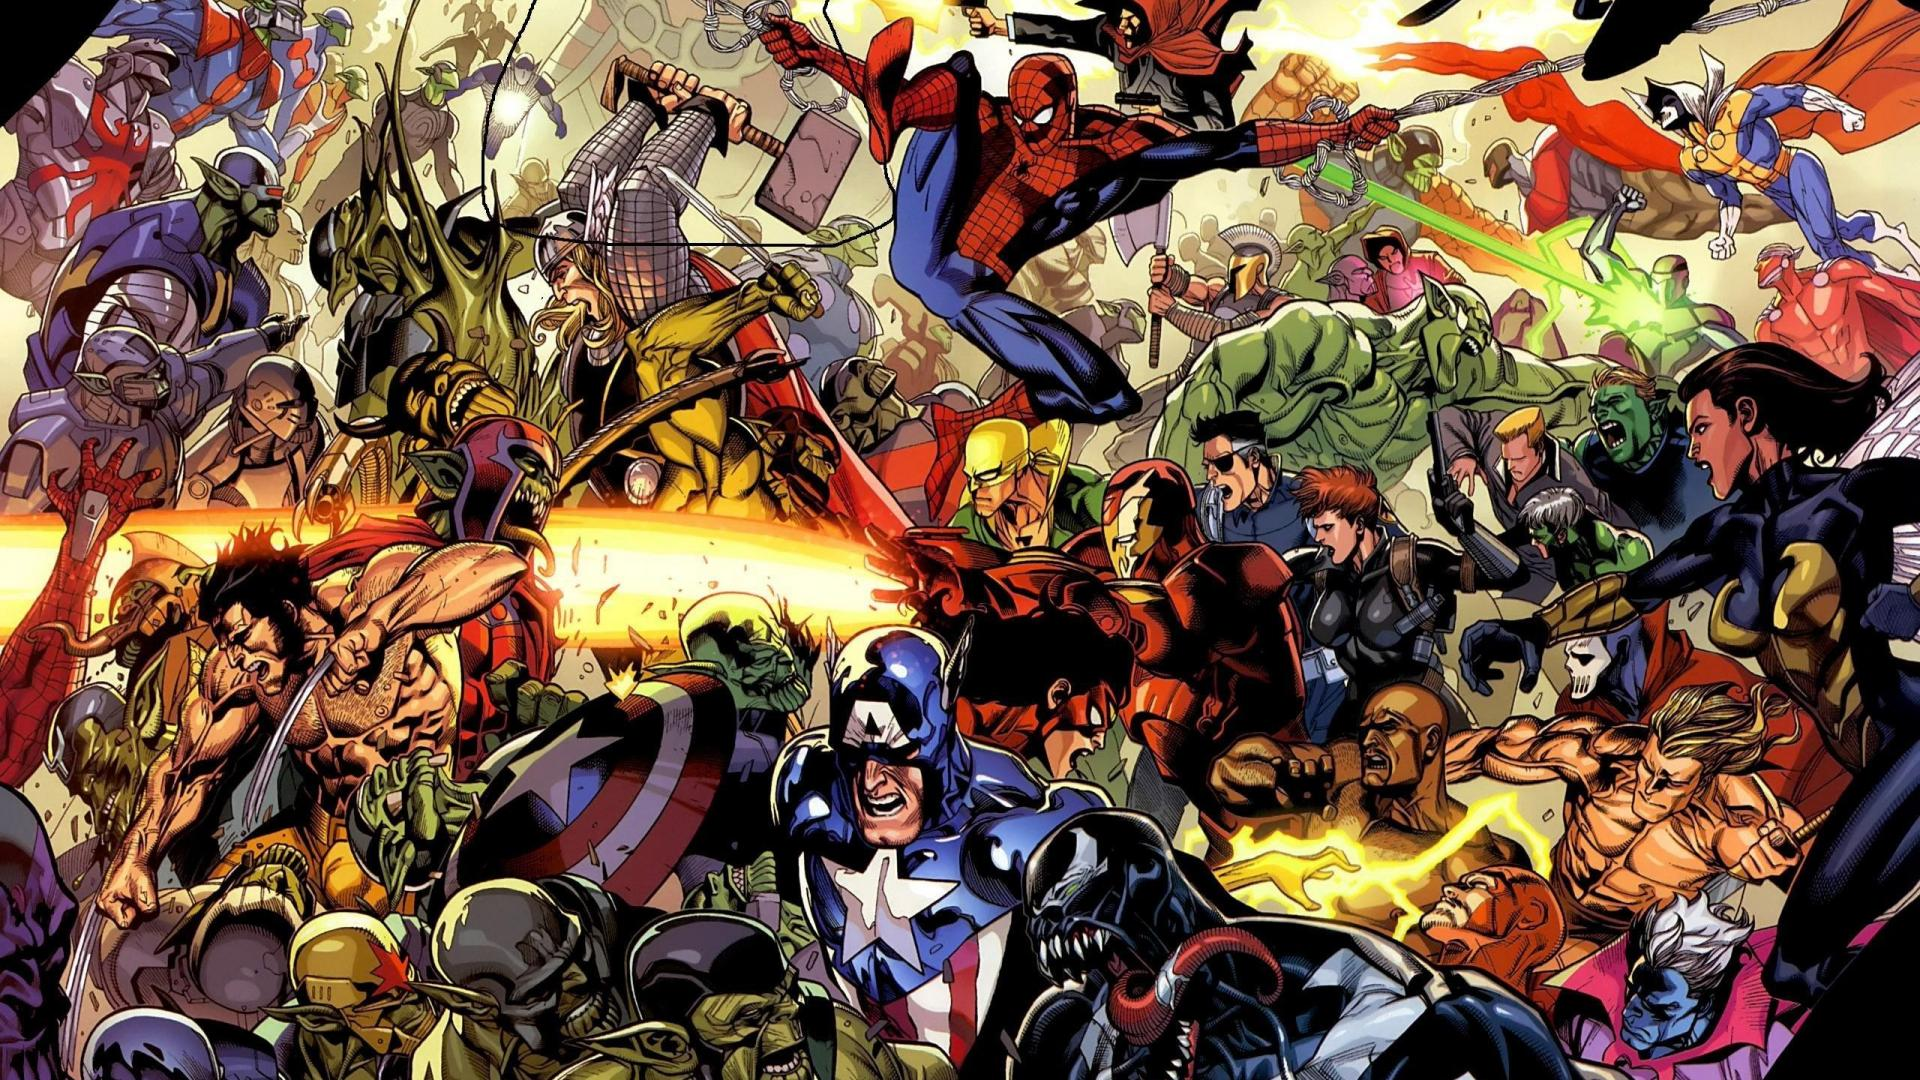 Cool screensavers site Marvel screensaver superheroes wallpaper 1920x1080